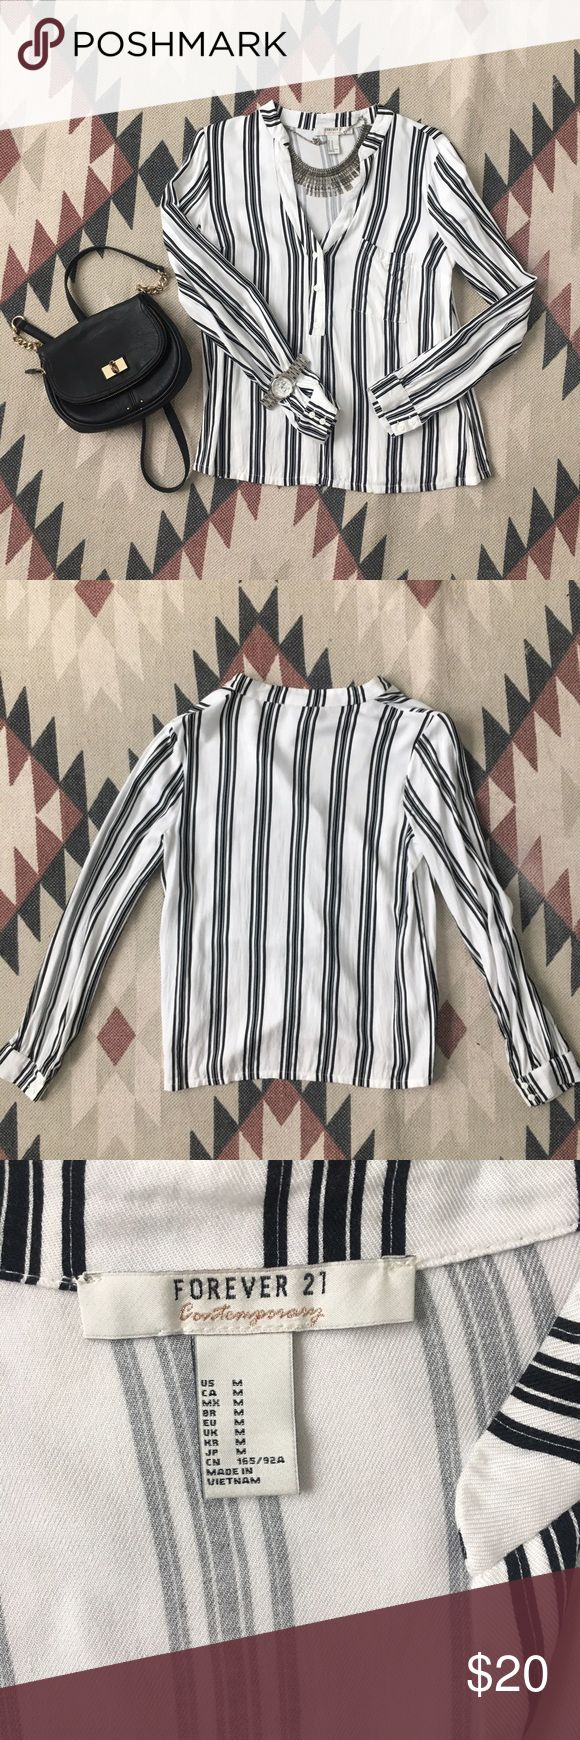 🦋Forever21 V Neck Stripped shirt🦋 Size: M Brand: Forever21 Color: Black/White  Condition: Excellent  Damage: None   Terms & Conditions: ✩ Ship day after purchase ✩ Delivery in 2-5 business days with USPS ✩ Scammer Warning: No Trades / $3 listings ✩ Allergy Warning: Smoke free / Pet free home Forever 21 Tops Button Down Shirts